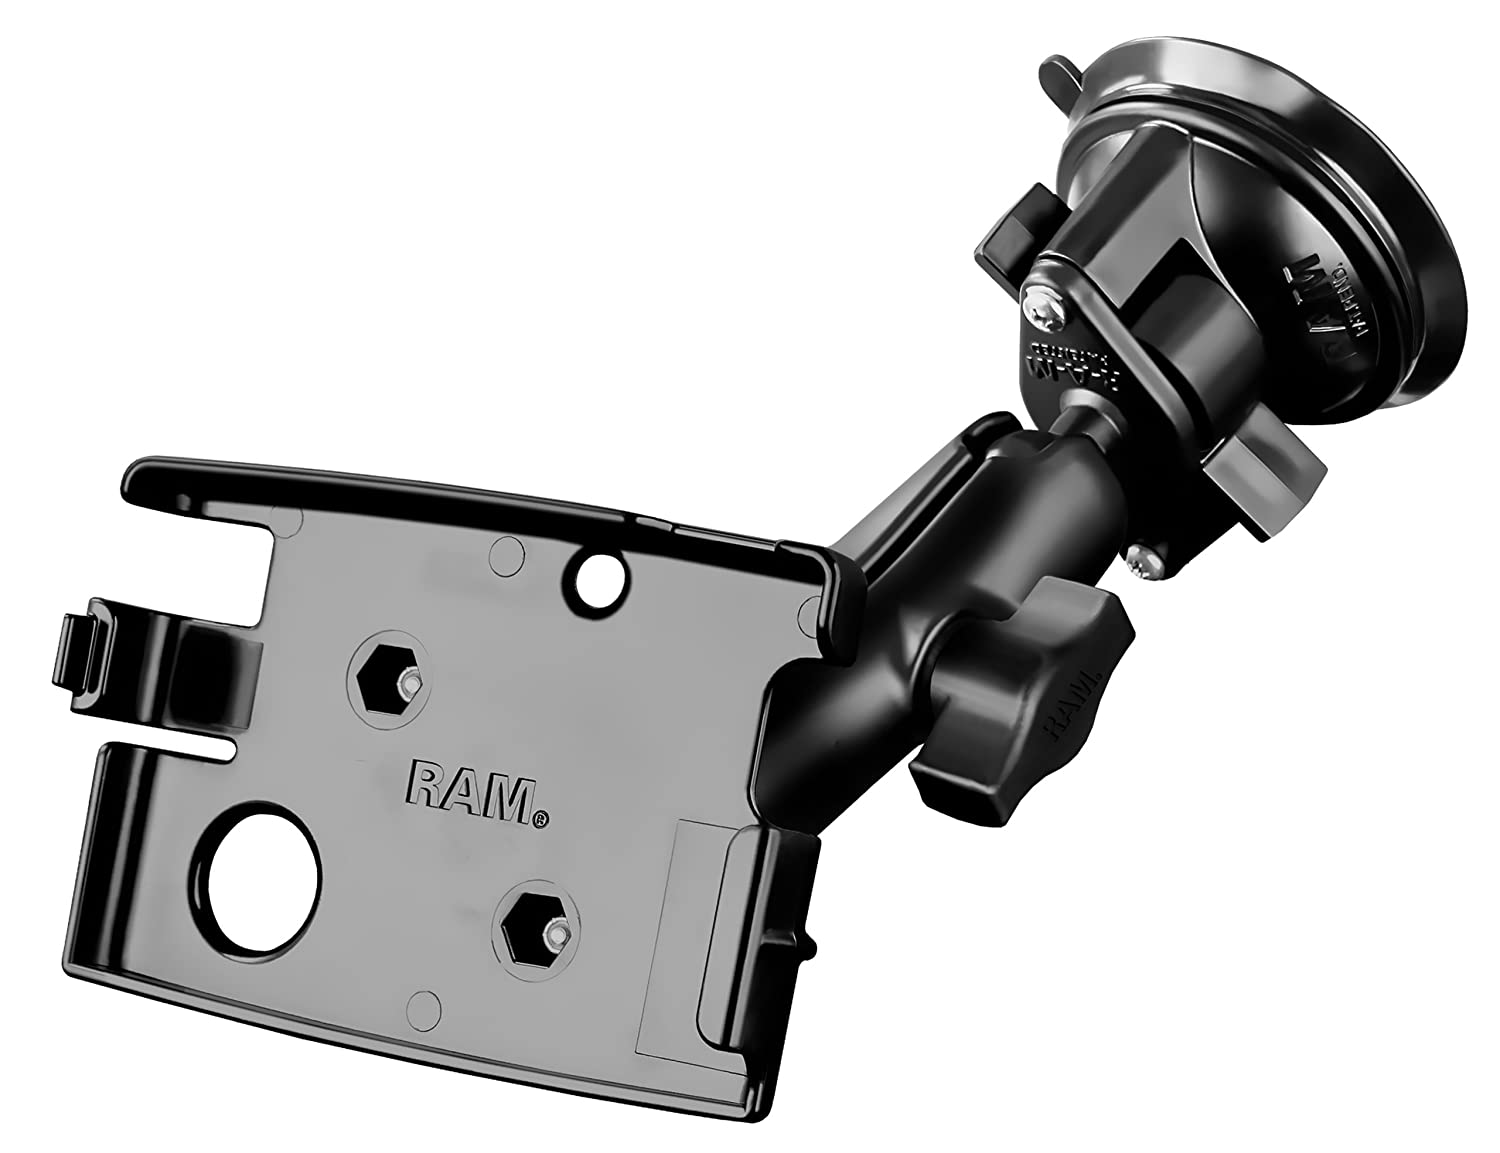 4210 RAM Mounting Systems RAM-B-166-MA12U Suction Cup Mount for Magellan Maestro 4200 4250 National Products Inc. 4220